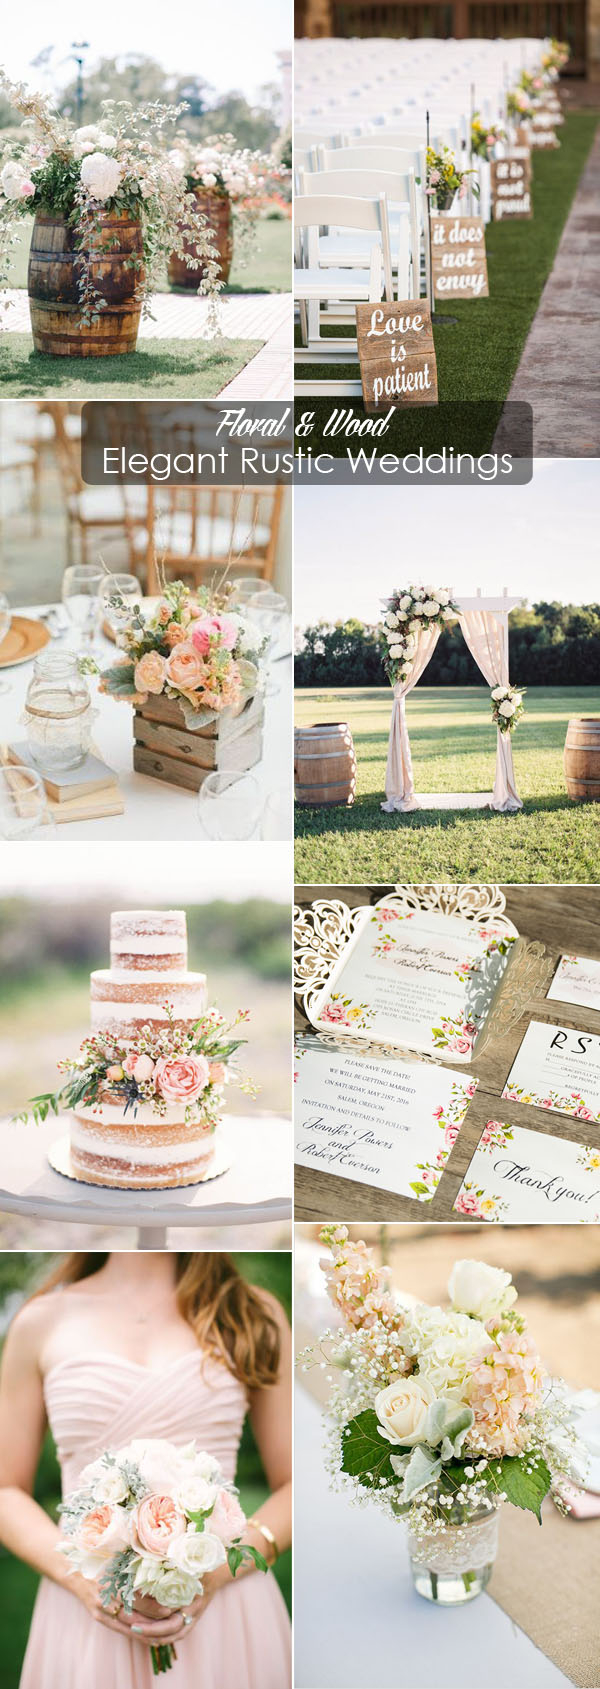 Elegant Wedding Ideas 40 Rustic Wedding Ideas With Elegant Details Elegantweddinginvites